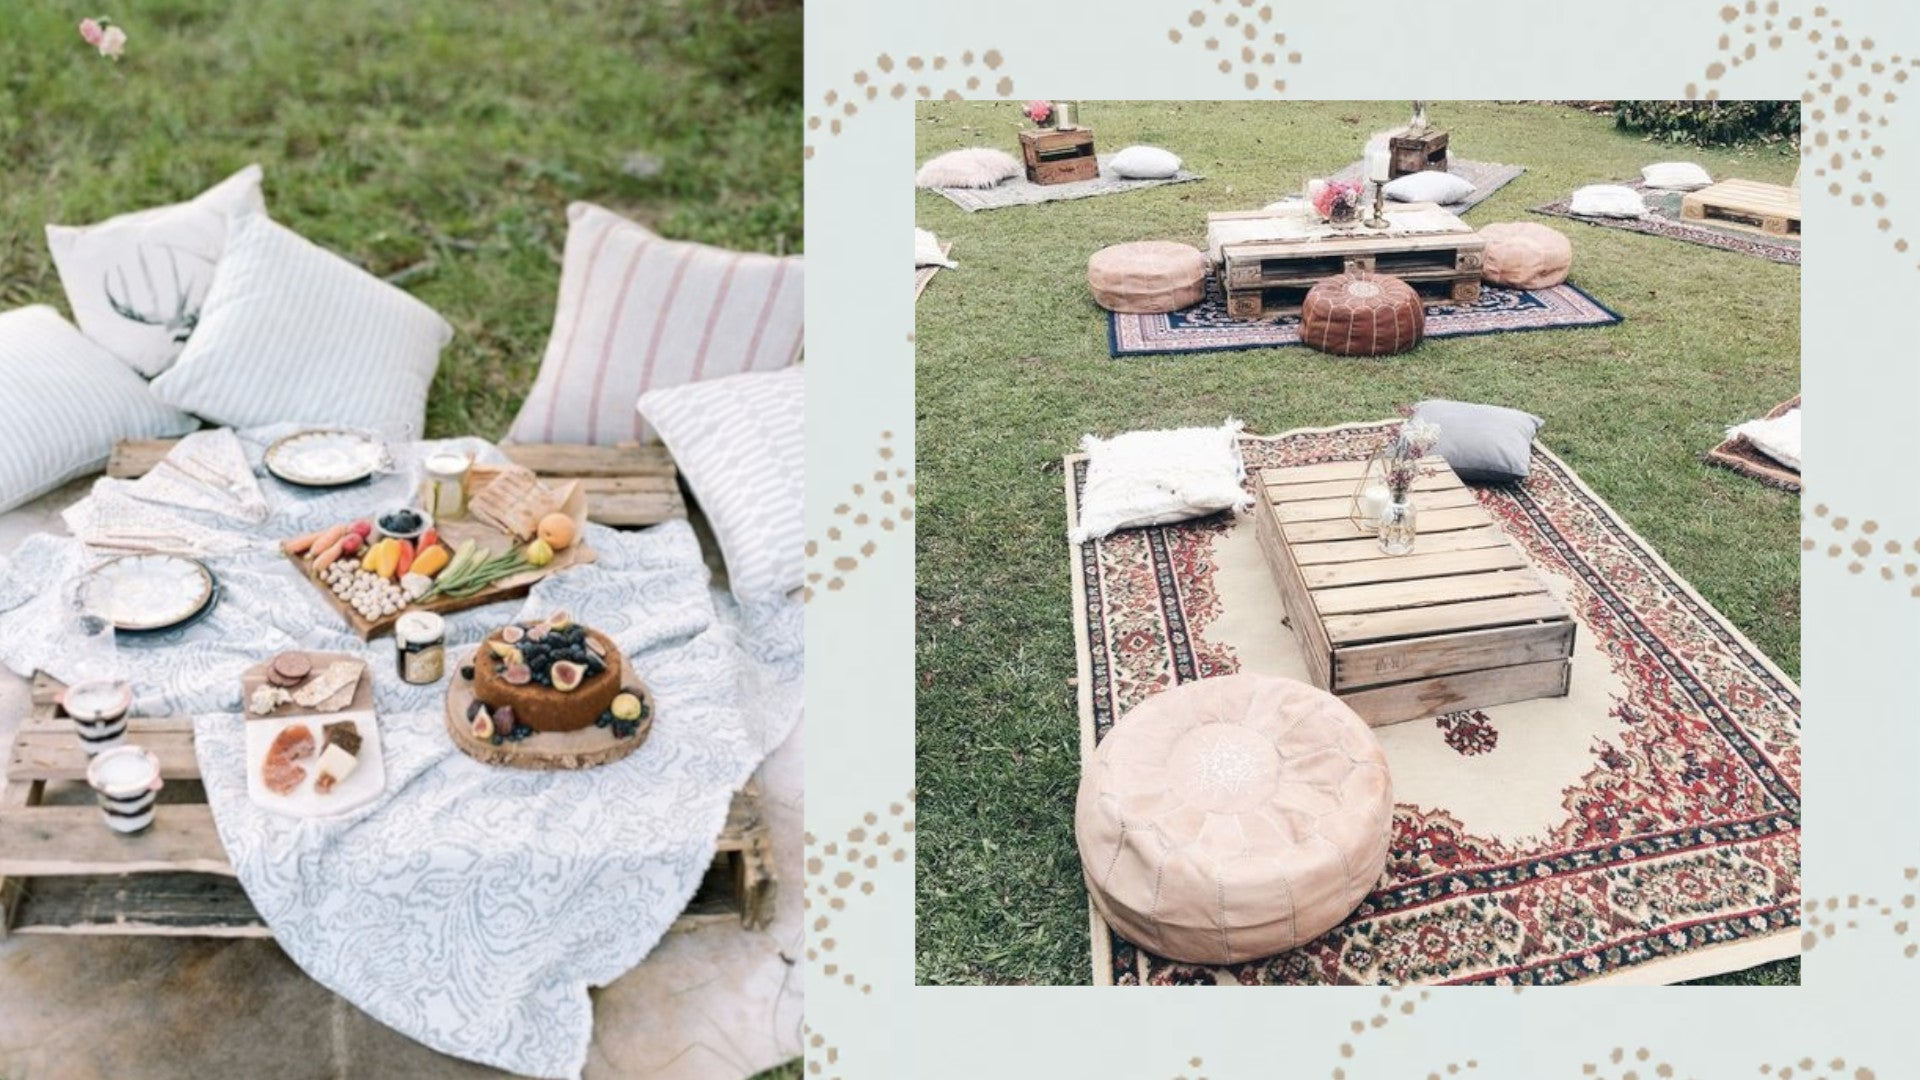 COVID-safe picnic backyard wedding on a budget